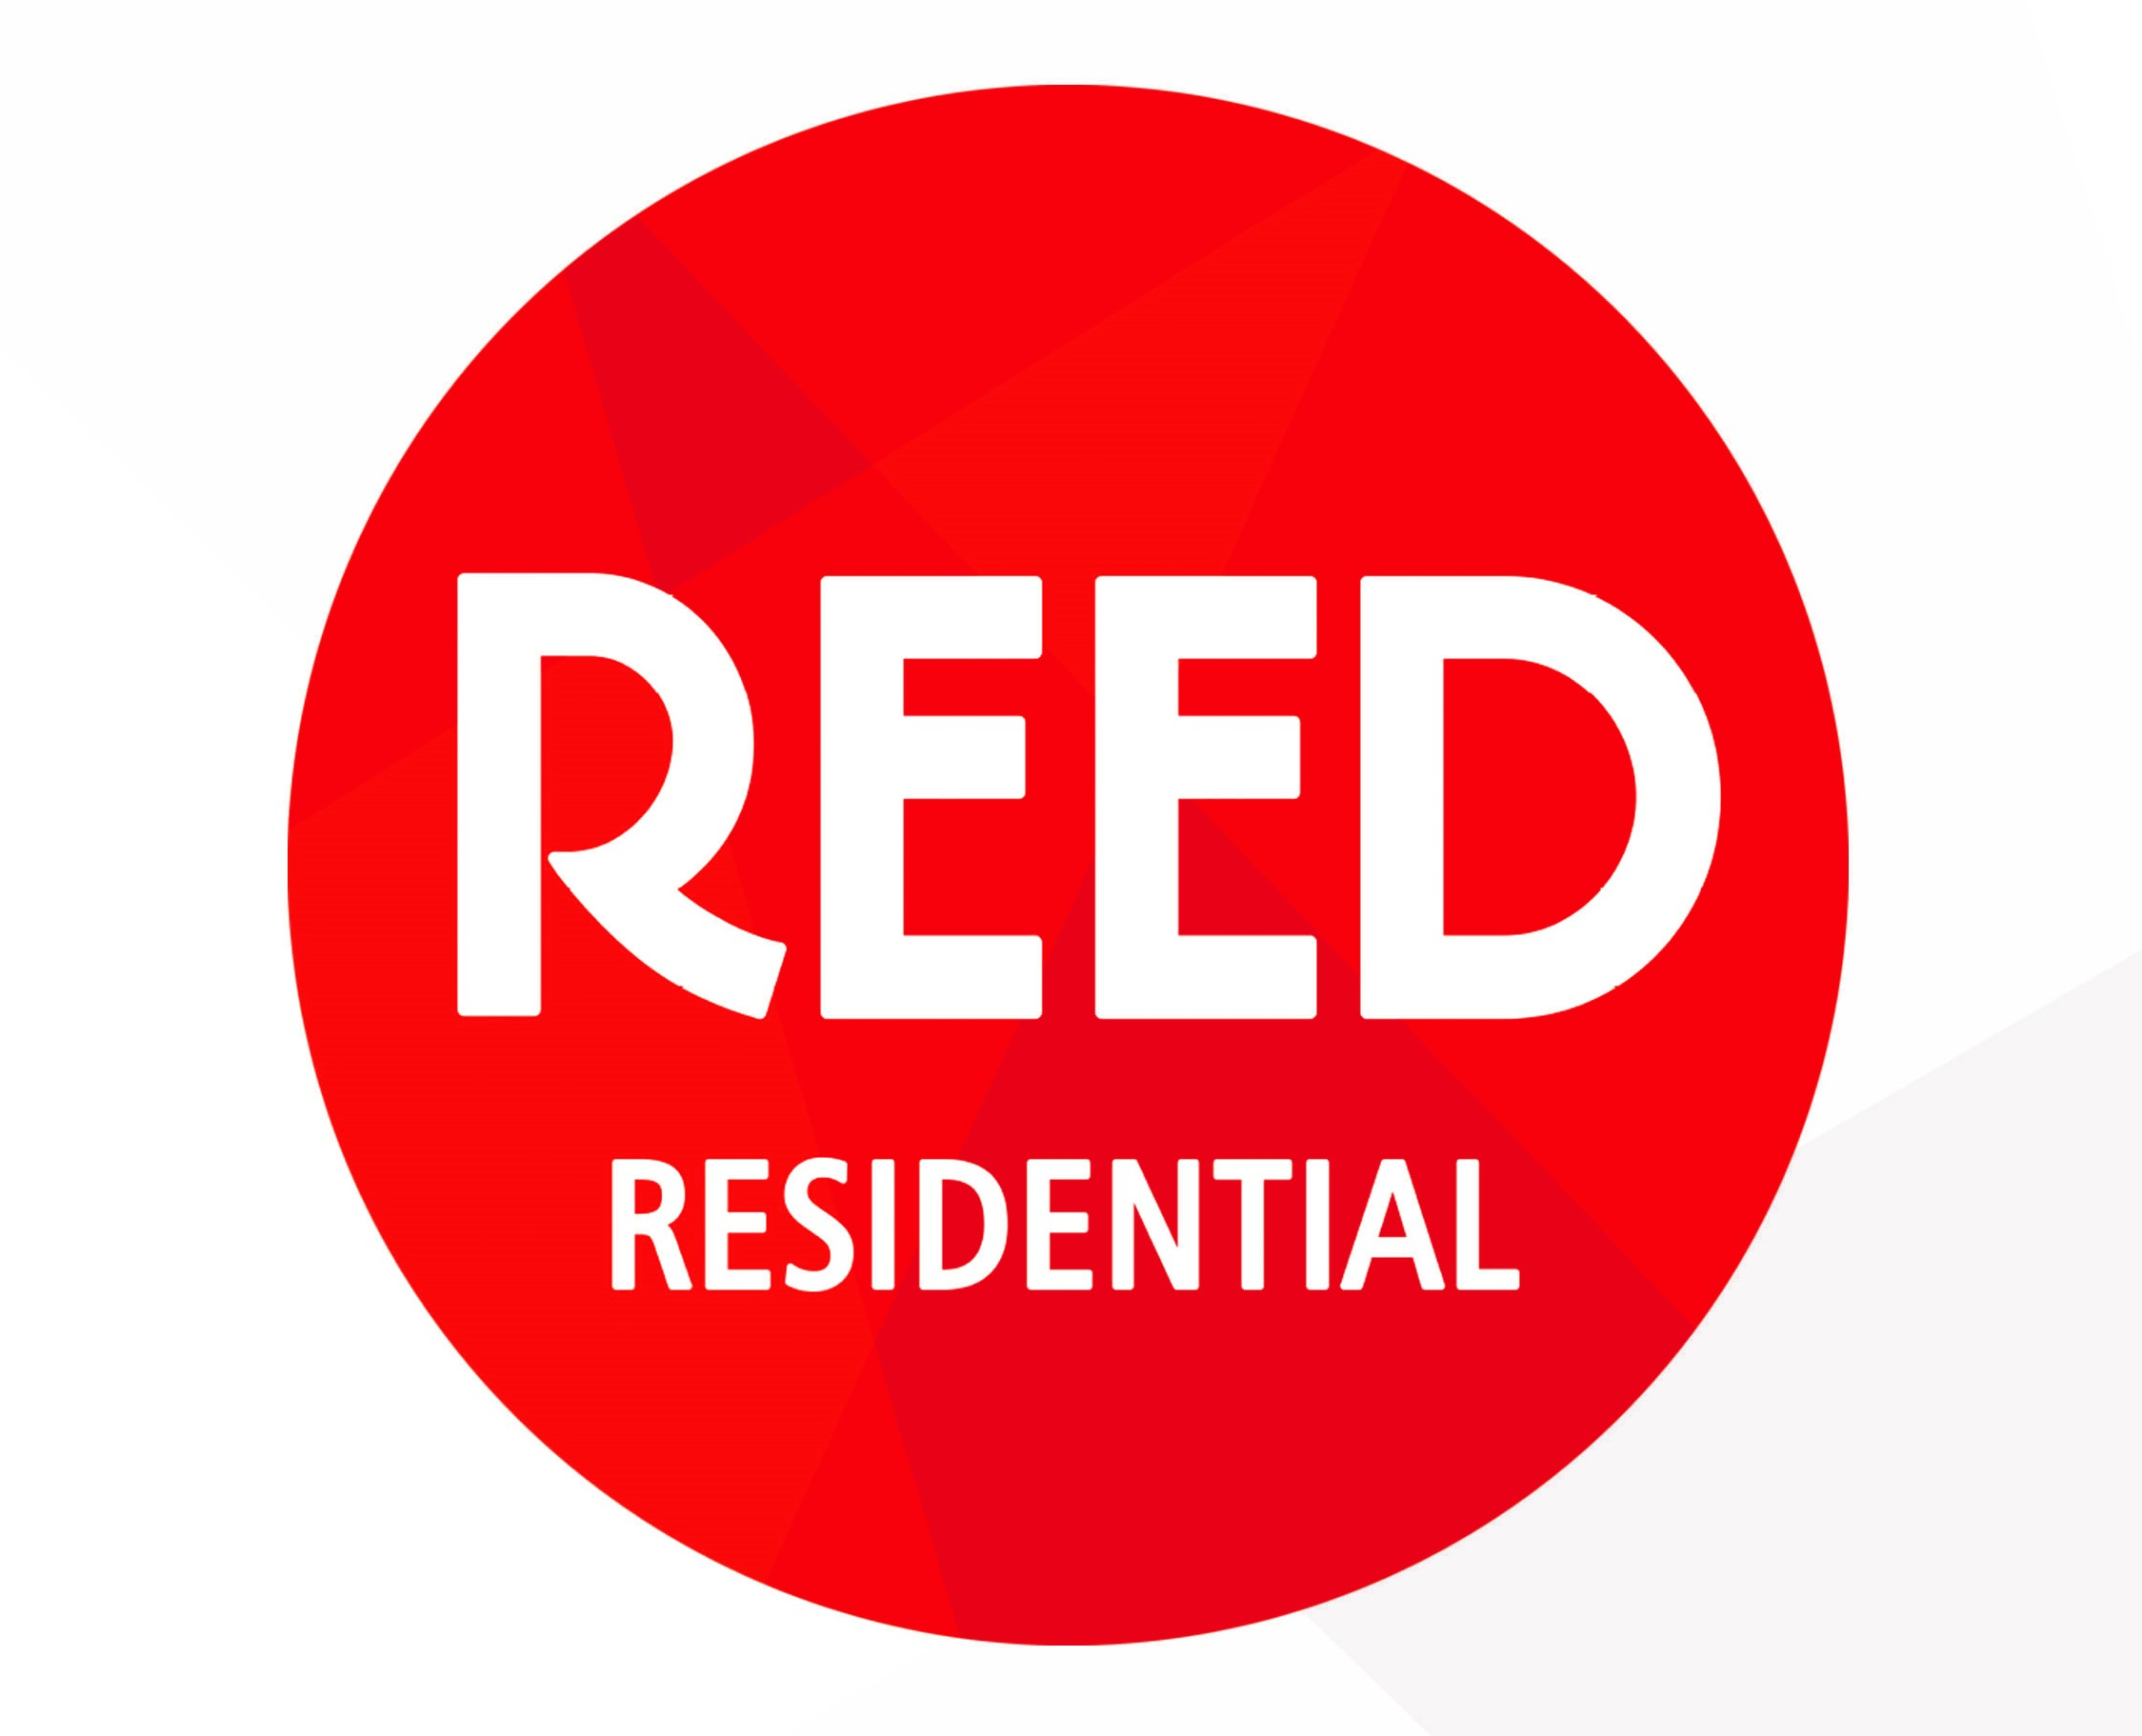 Reed Residential - Westcliff on Sea : Letting agents in Nottingham Nottinghamshire